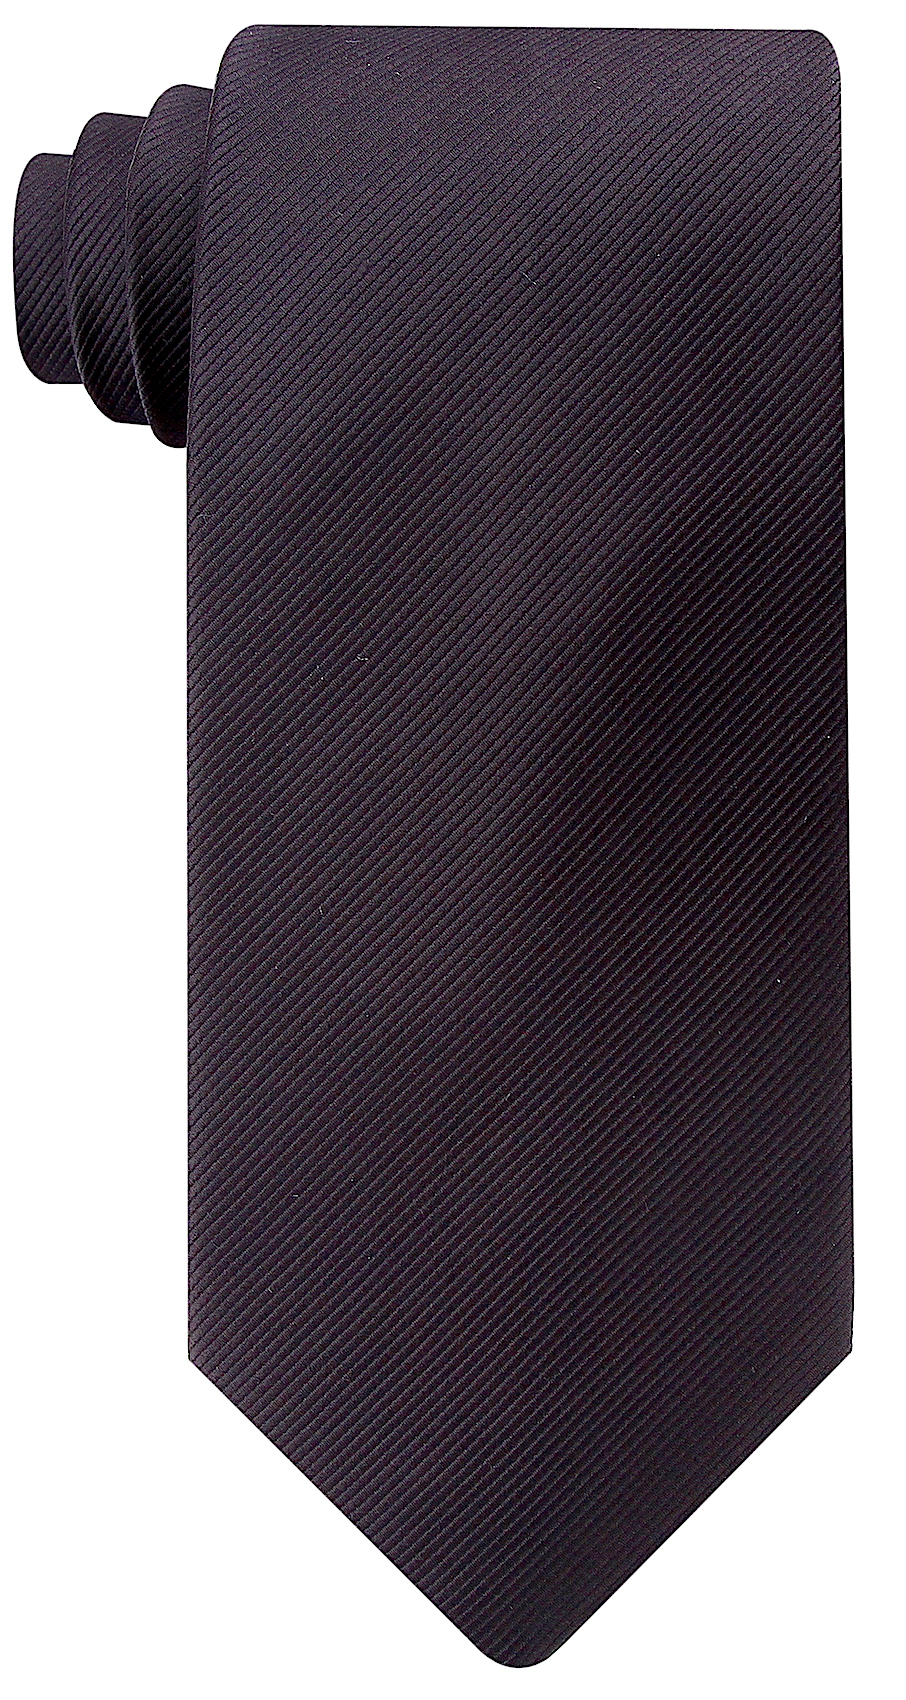 Scott-Allan-Mens-Twill-Striped-Necktie thumbnail 4